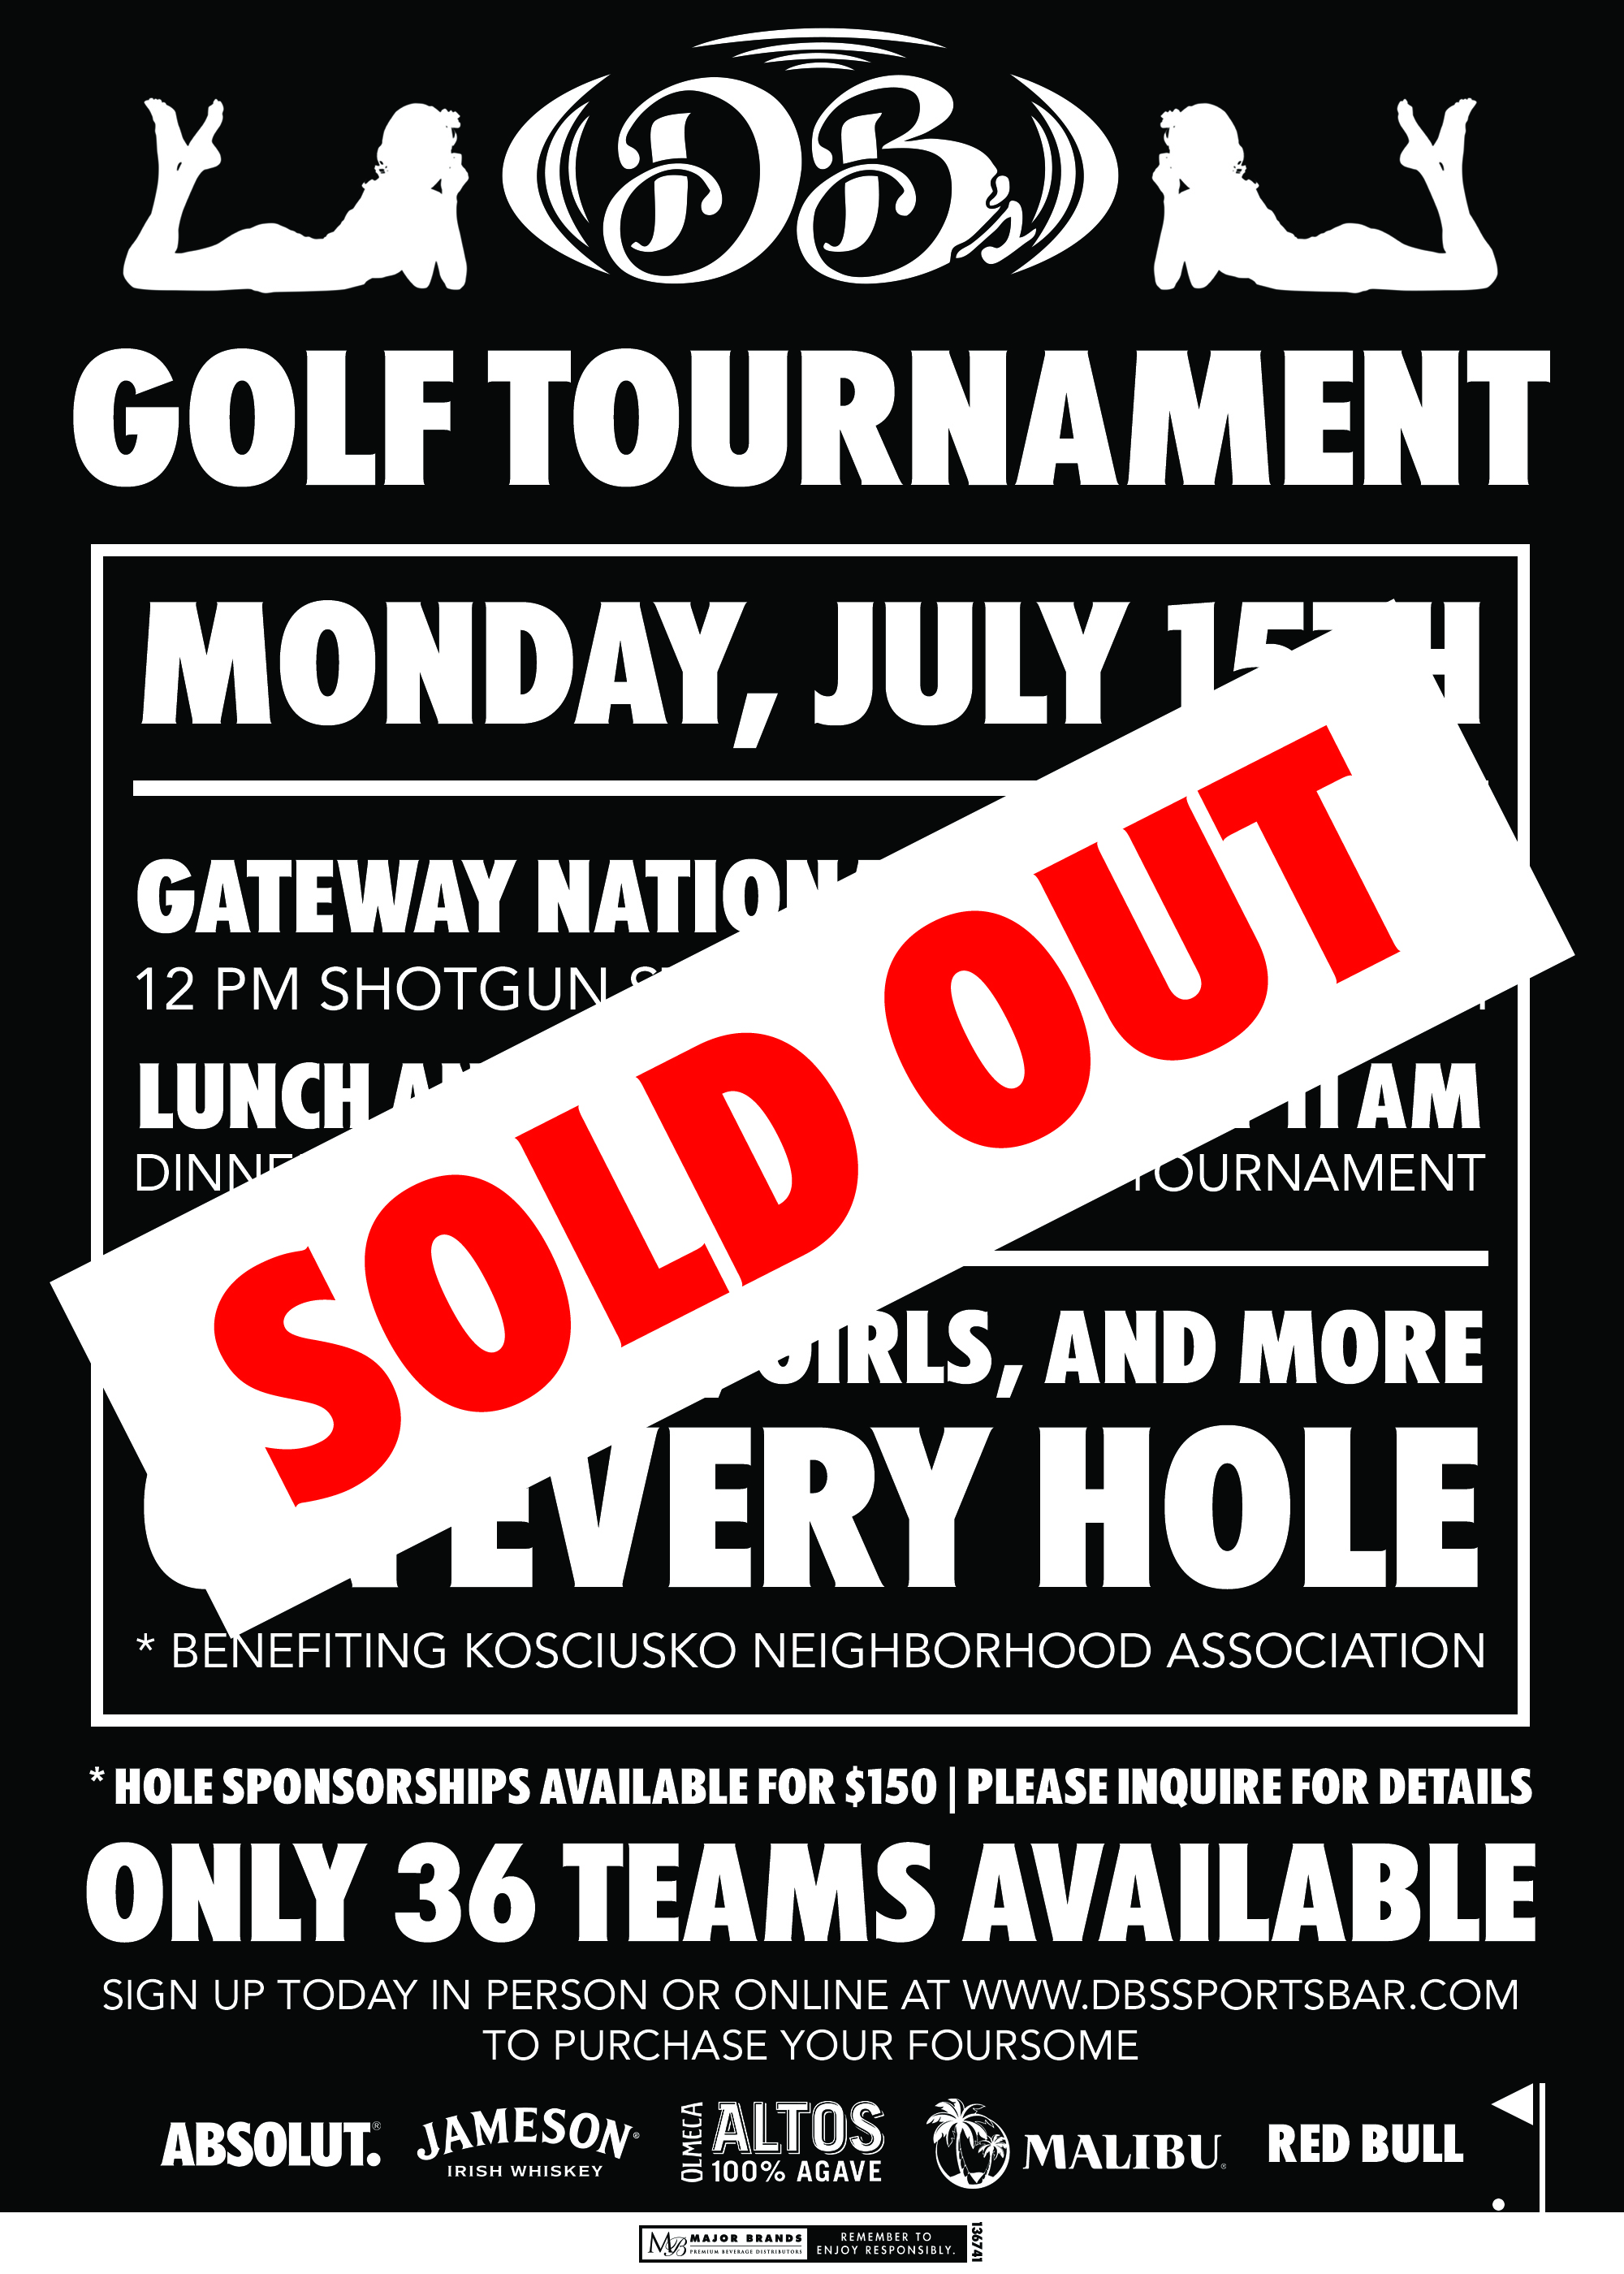 MBSL_136741_DBS_GOLF SOLD OUT TOURNAMENT 2019_ 5X7